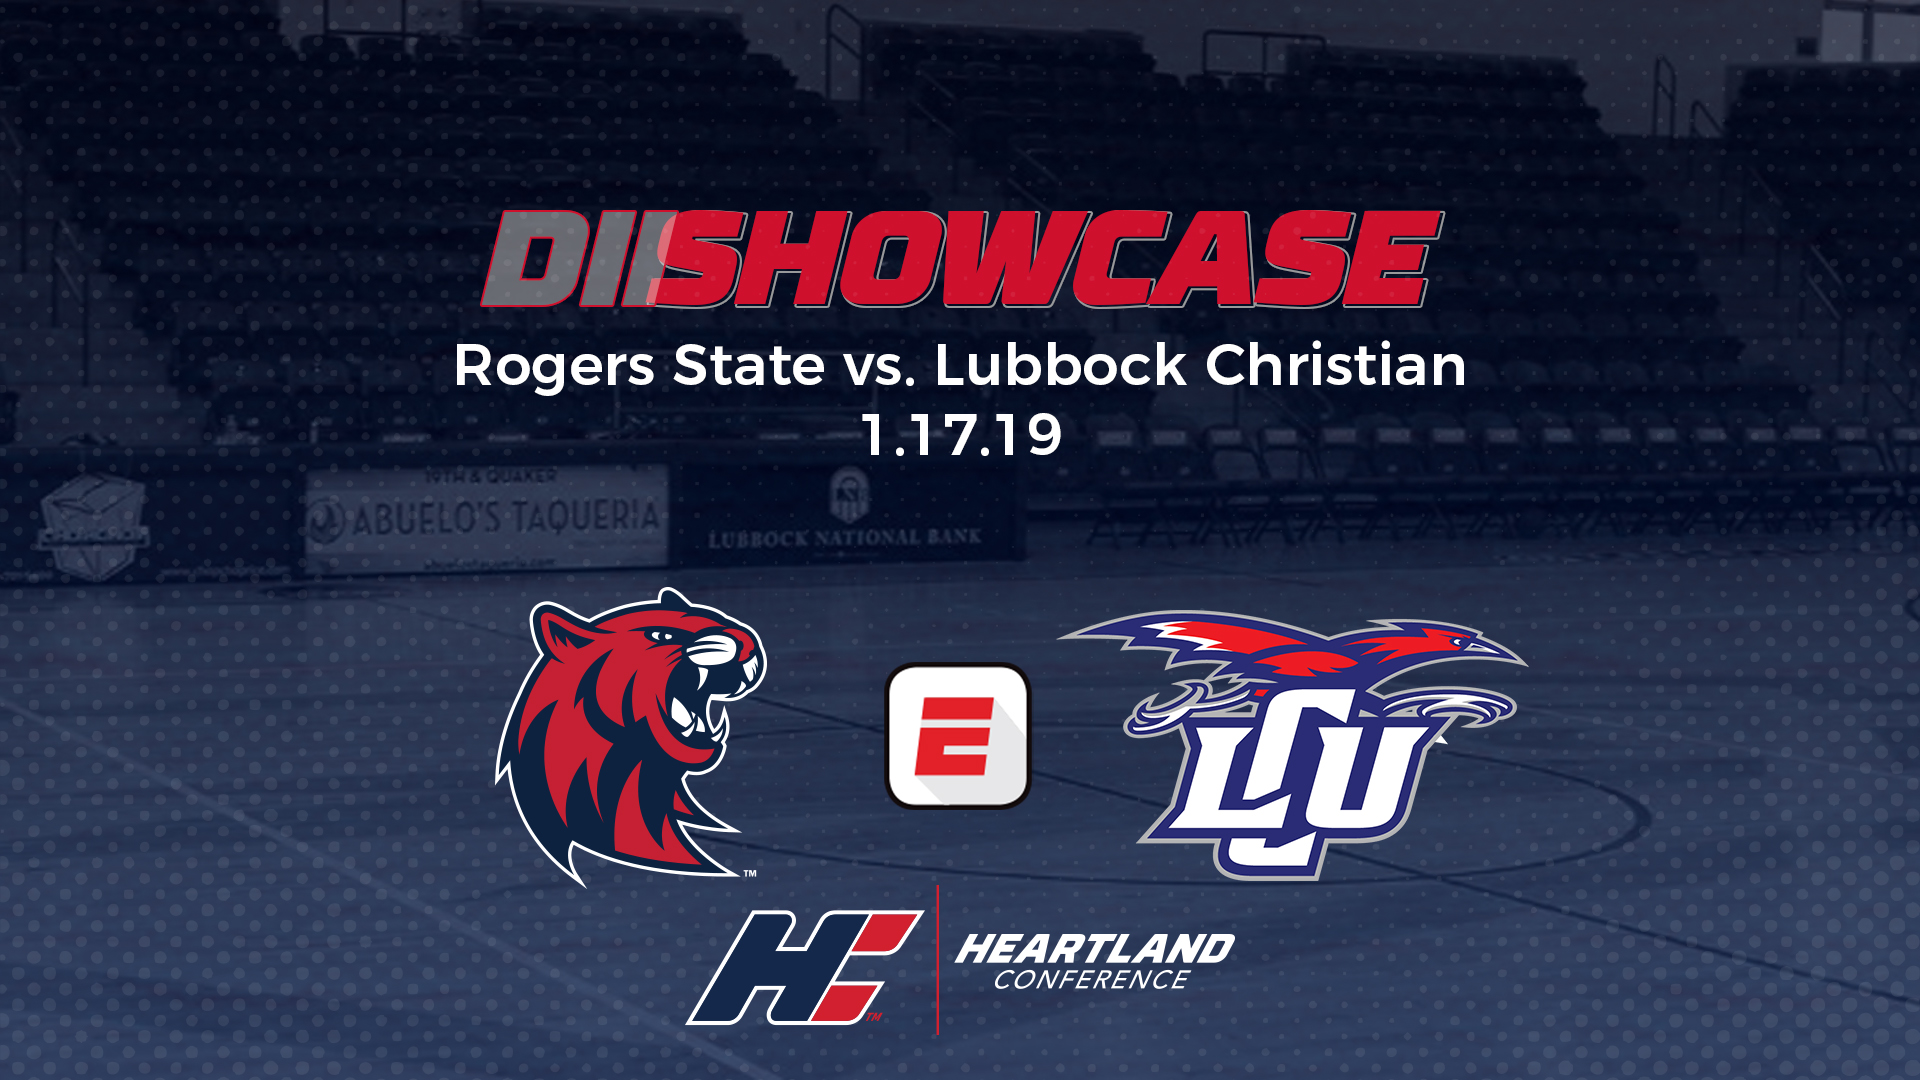 Hillcat Basketball Selected For Dii Showcase On Espn - Sports Jersey , HD Wallpaper & Backgrounds